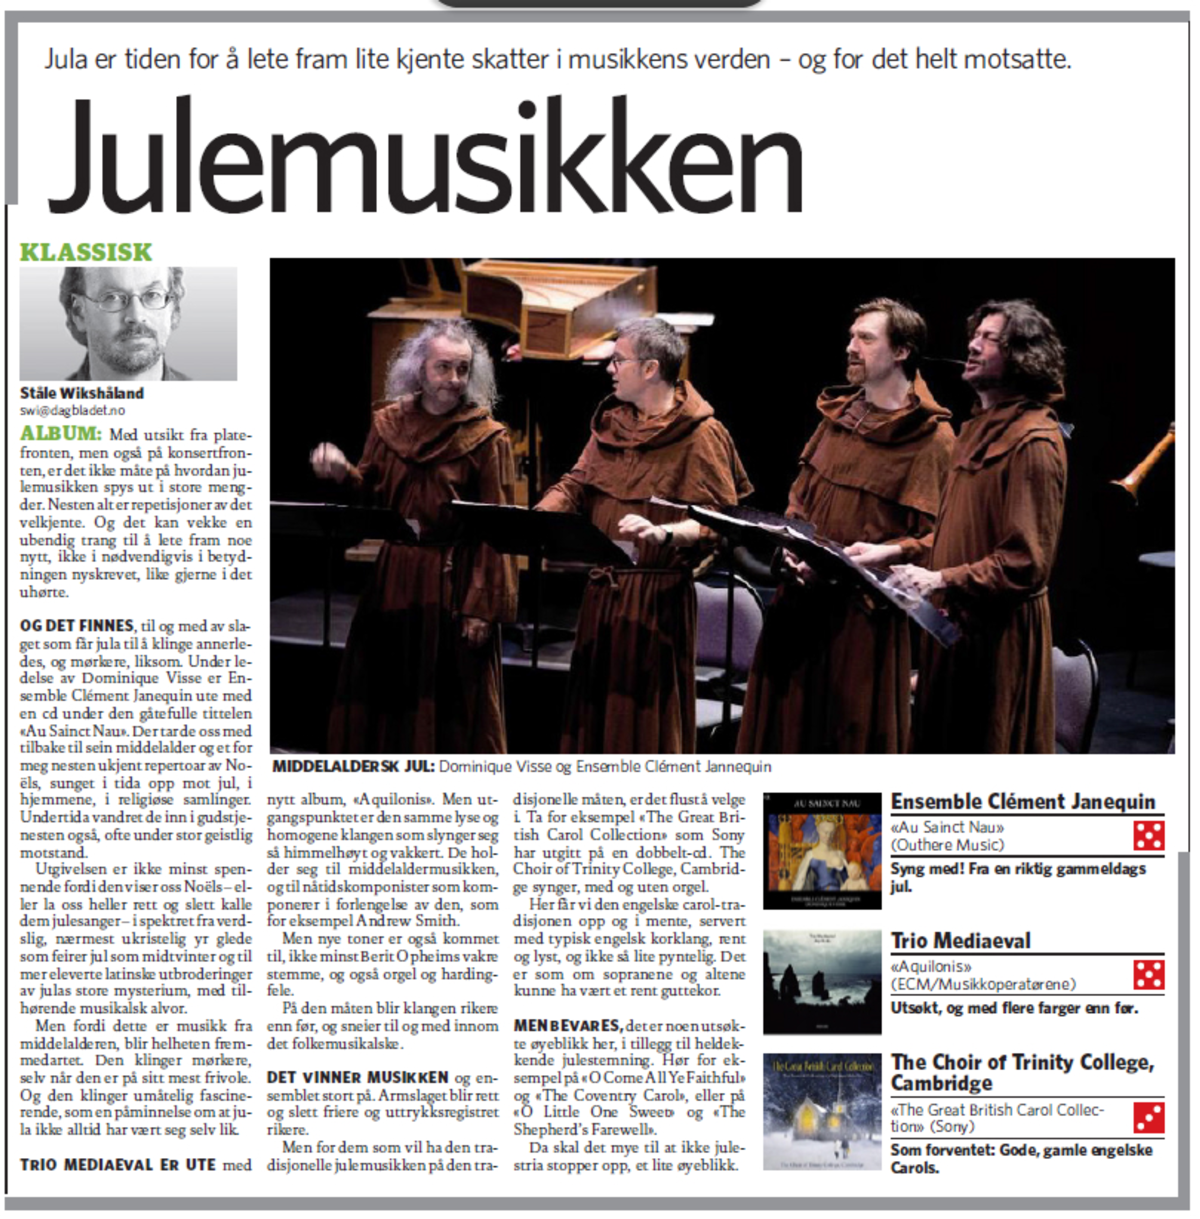 Aquilonis review in Dagbladet